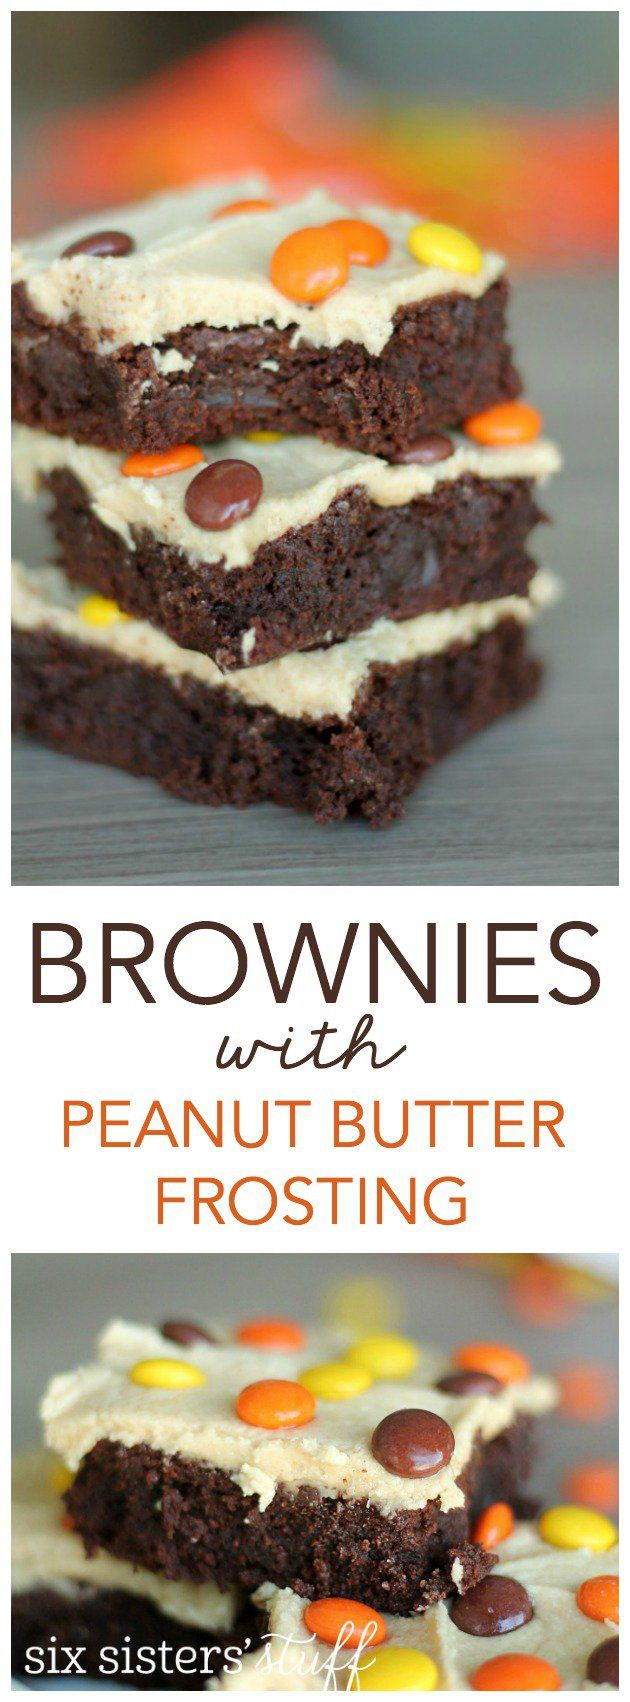 Fudgy Brownies with Peanut Butter Frosting from SixSistersStuff.com. These are my new favorite brownie!